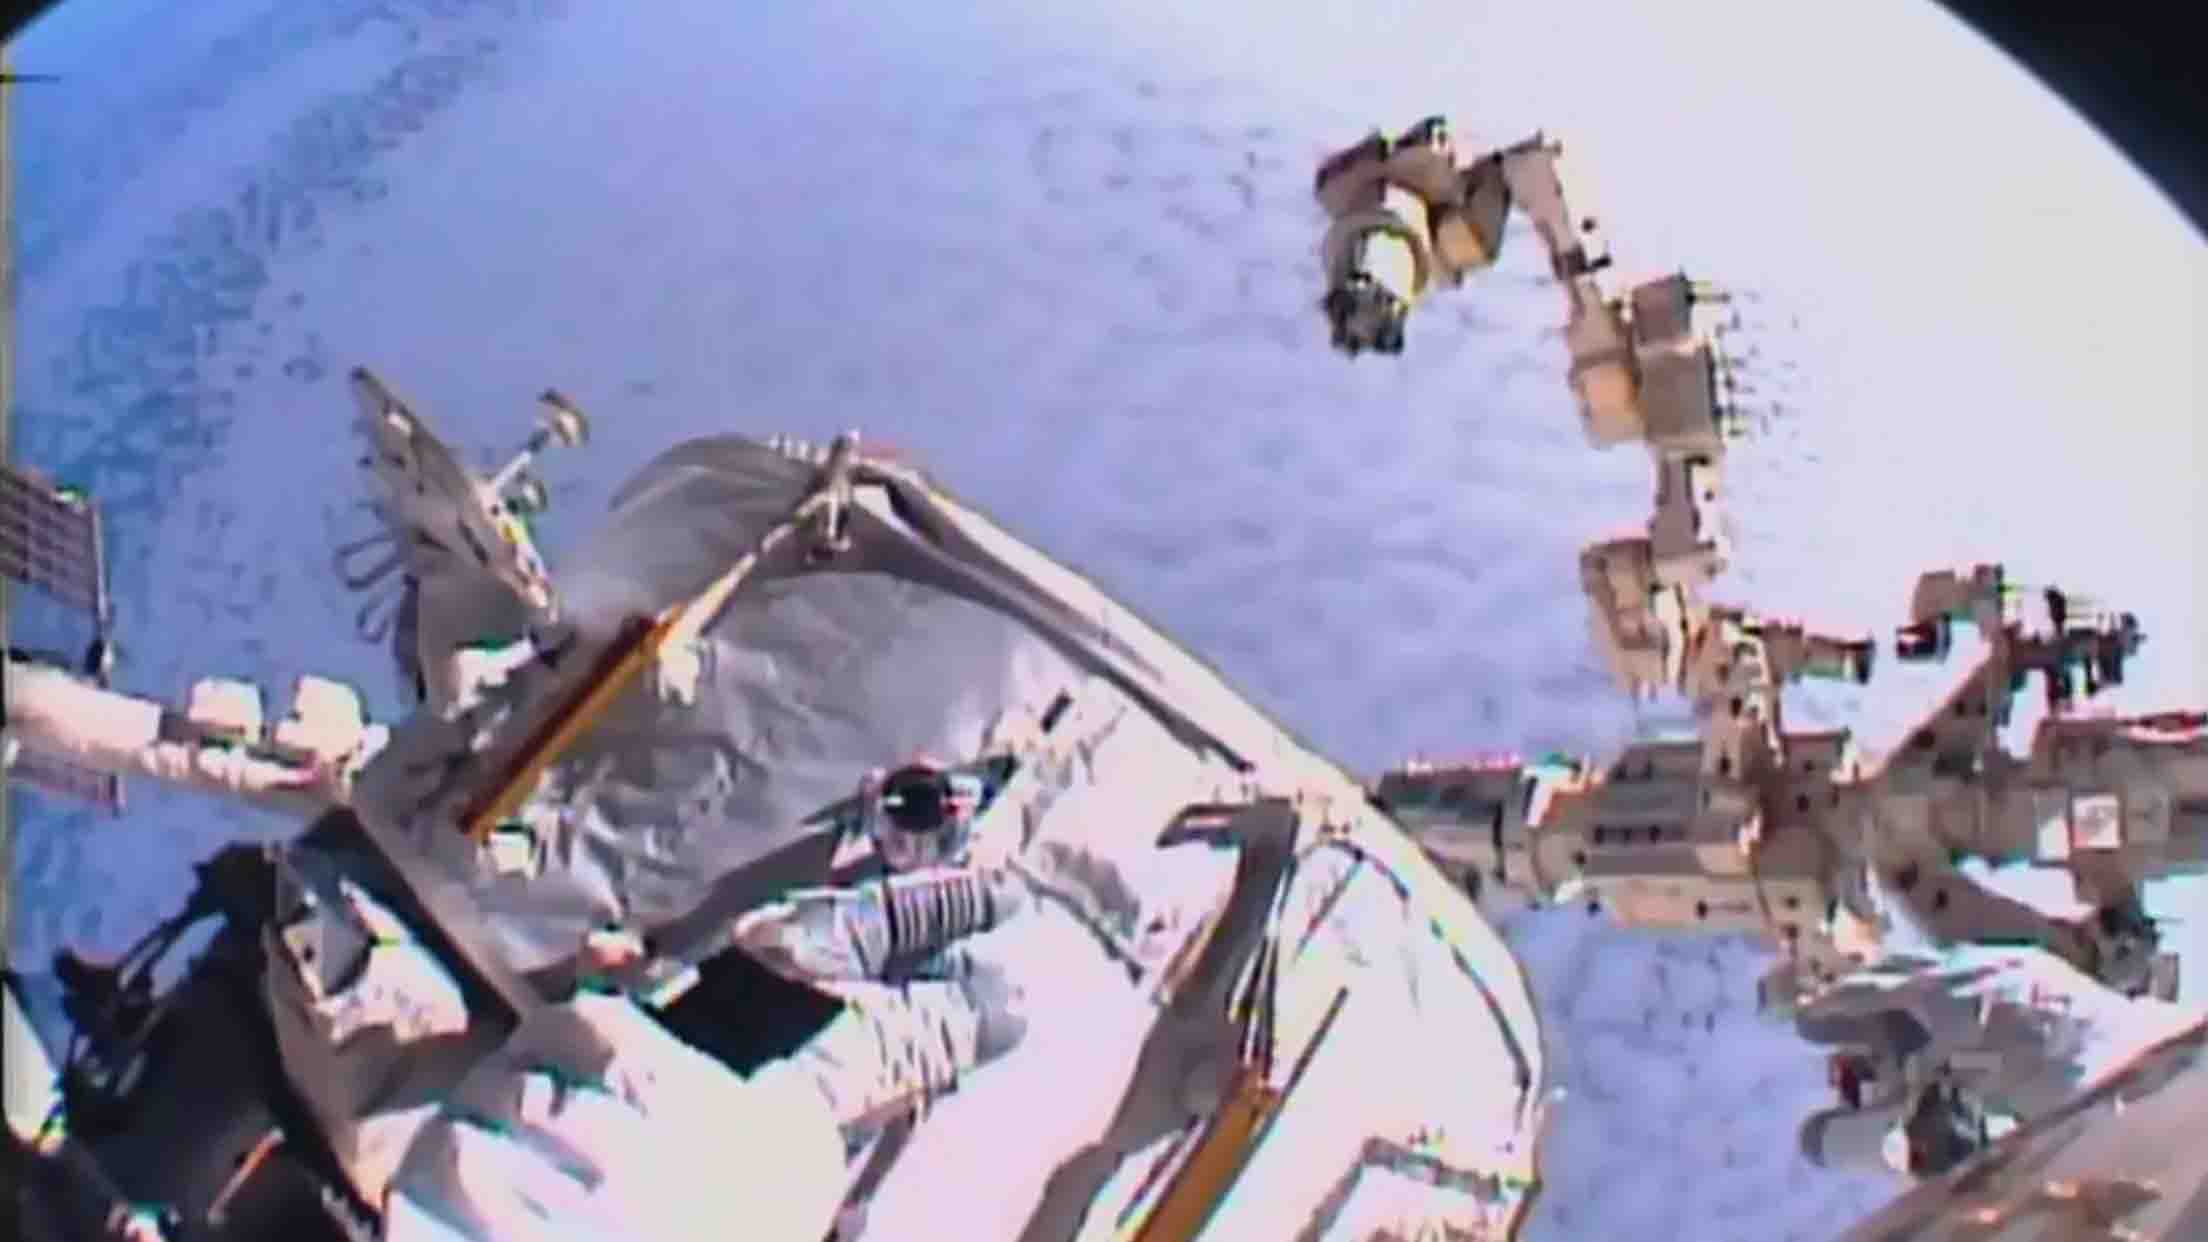 """This NASA TV video grab shows US astronaut Kate Rubins adjusting cables on August 19, 2016 at the International Space Station. With more private spaceship traffic expected at the International Space Station in the coming years, two US astronauts embarked on a spacewalk Friday to install a special parking spot for them. The spacewalk began at 8:04 (1204 GMT) when Americans Jeff Williams and Kate Rubins switched their spacesuits to internal battery power. Shortly afterward, they made their way outside the orbiting laboratory to begin the work of attaching an international docking adaptor, launched aboard a SpaceX Dragon cargo ship last month.  / AFP PHOTO / NASA TV / HO / RESTRICTED TO EDITORIAL USE - MANDATORY CREDIT """"AFP PHOTO / NASA TV"""" - NO MARKETING NO ADVERTISING CAMPAIGNS - DISTRIBUTED AS A SERVICE TO CLIENTS"""